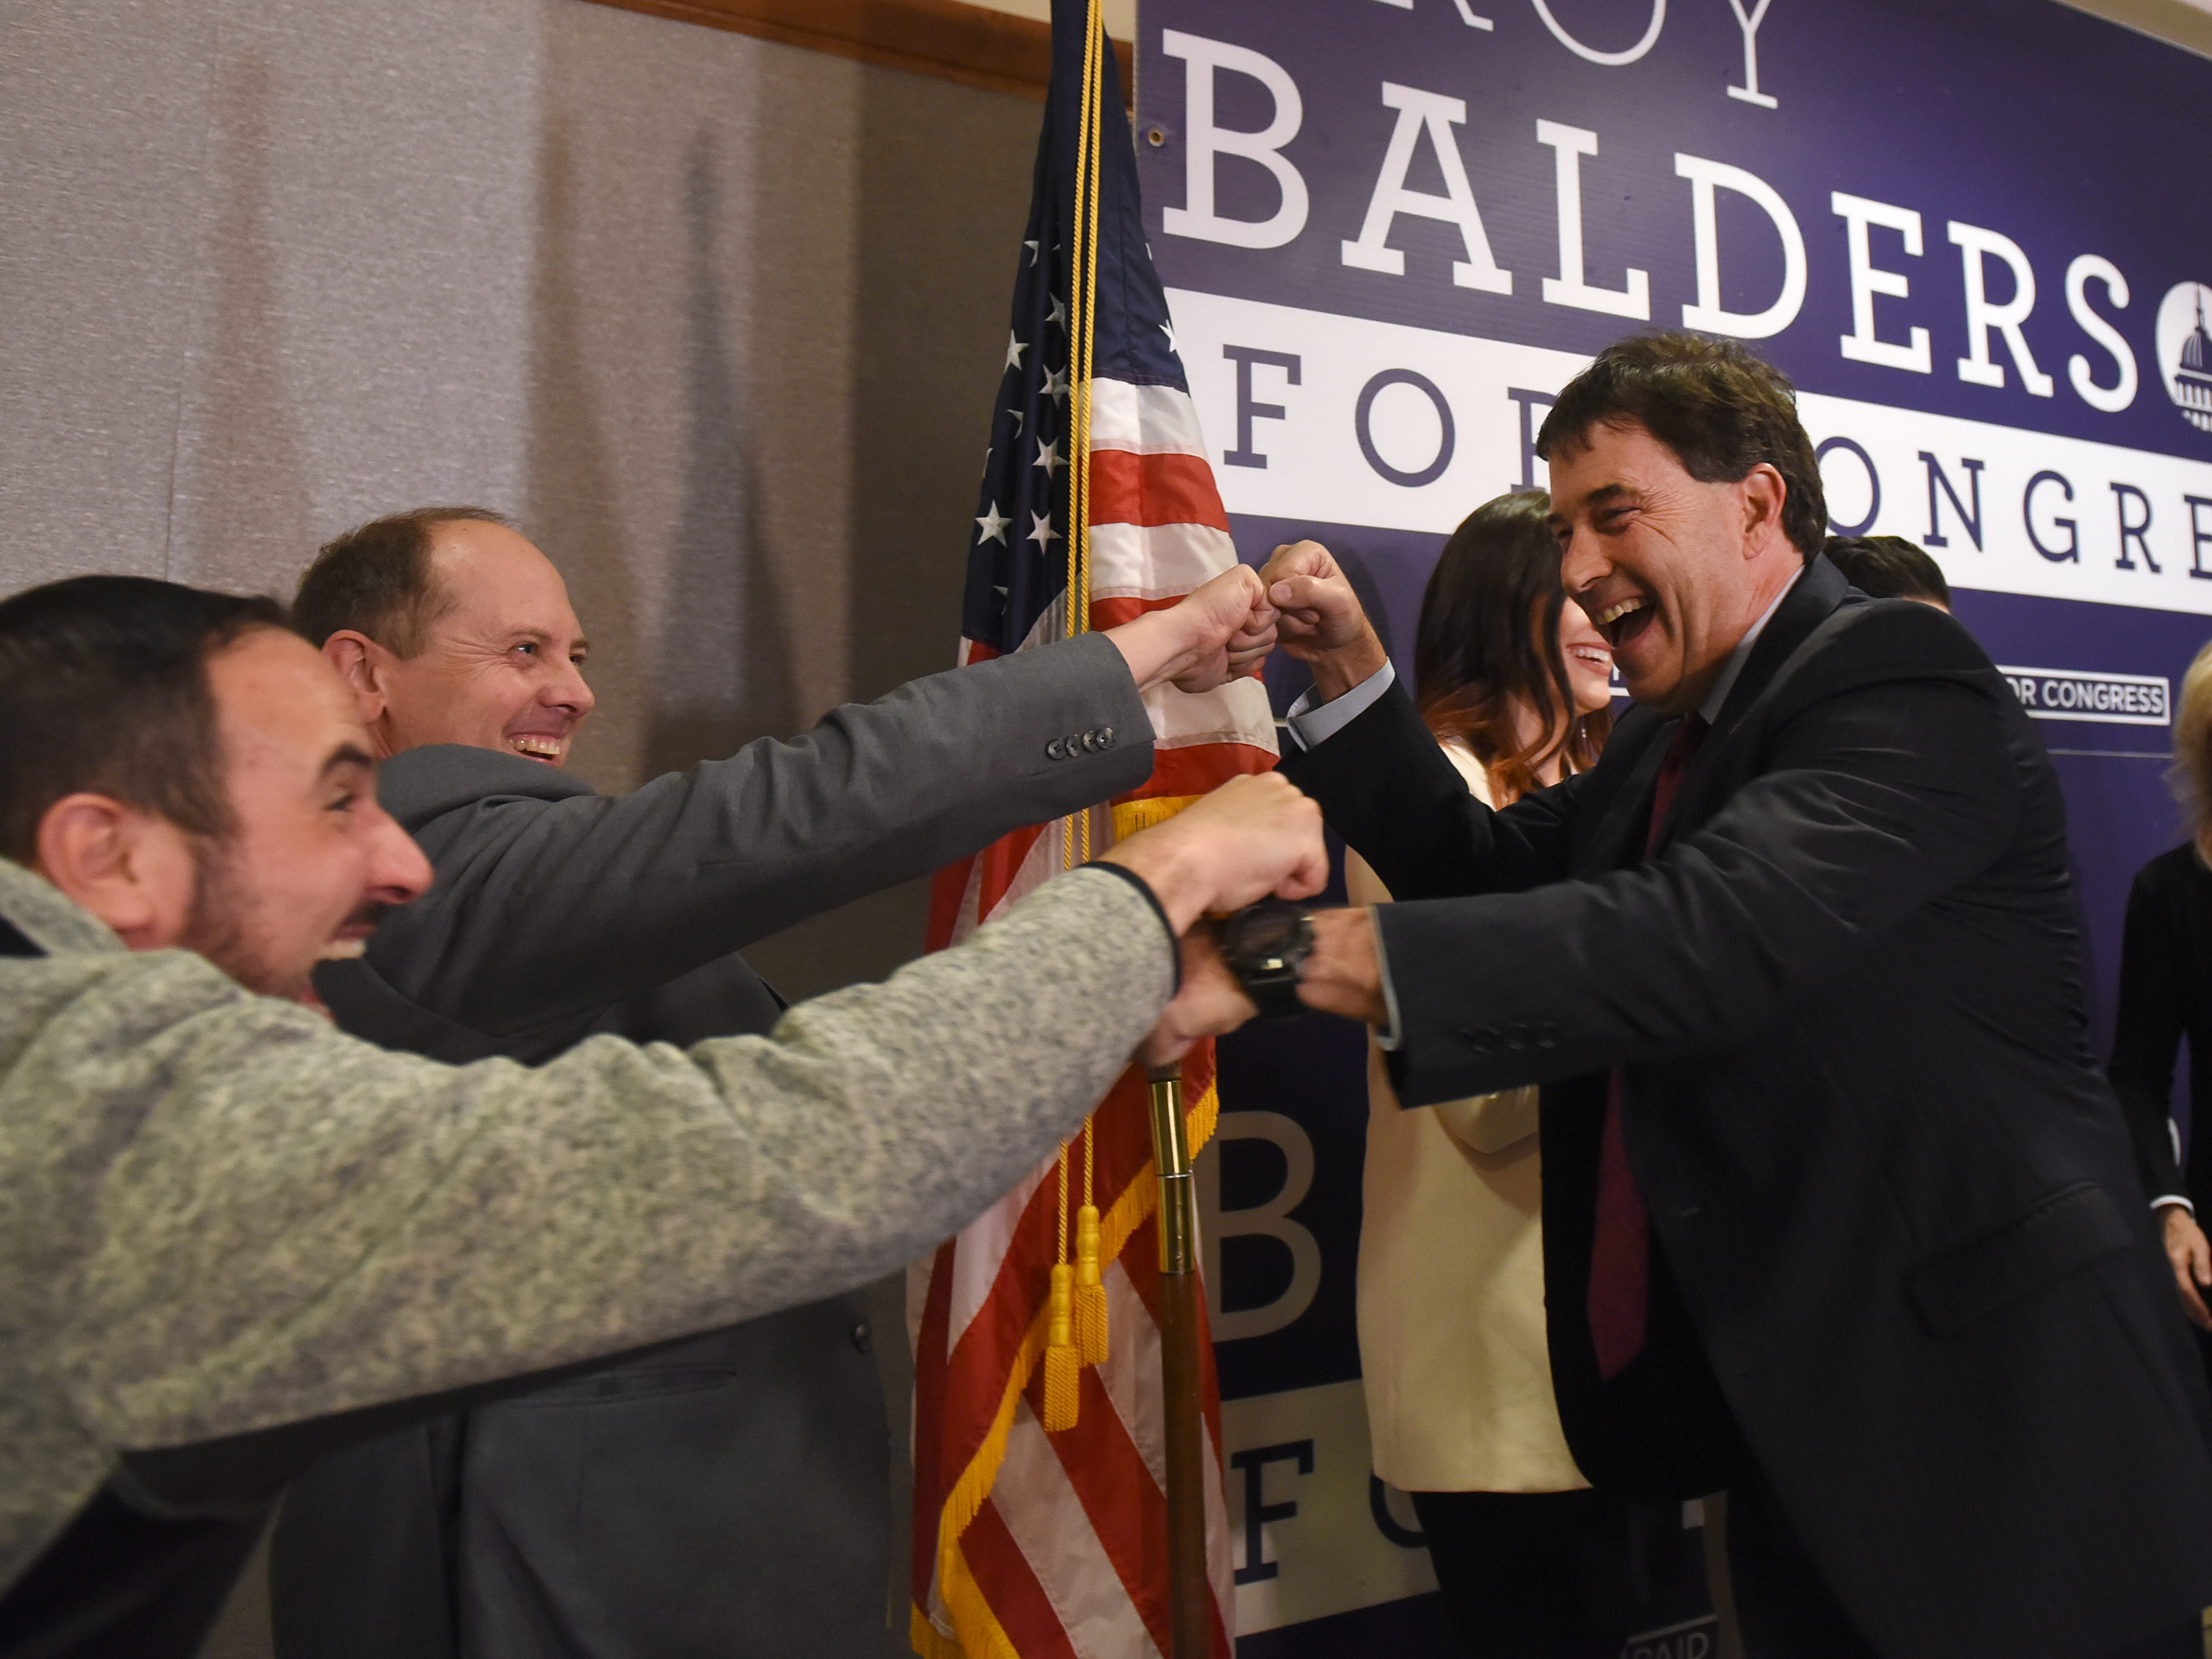 Todd Shelton and Ohio Sen. Jay Hottinger fist bump Congressman Troy Balderson as he leaves the stage after his election night win. Balderson has defeated Democratic challenger Danny O'Connor twice now as the pair faced off in August to fill Pat Tiberi's seat after he retired. Balderson was just one of several Republicans that swept their races, including Brian Hill who easily defeated Kristine Geis in the race for House District 97.